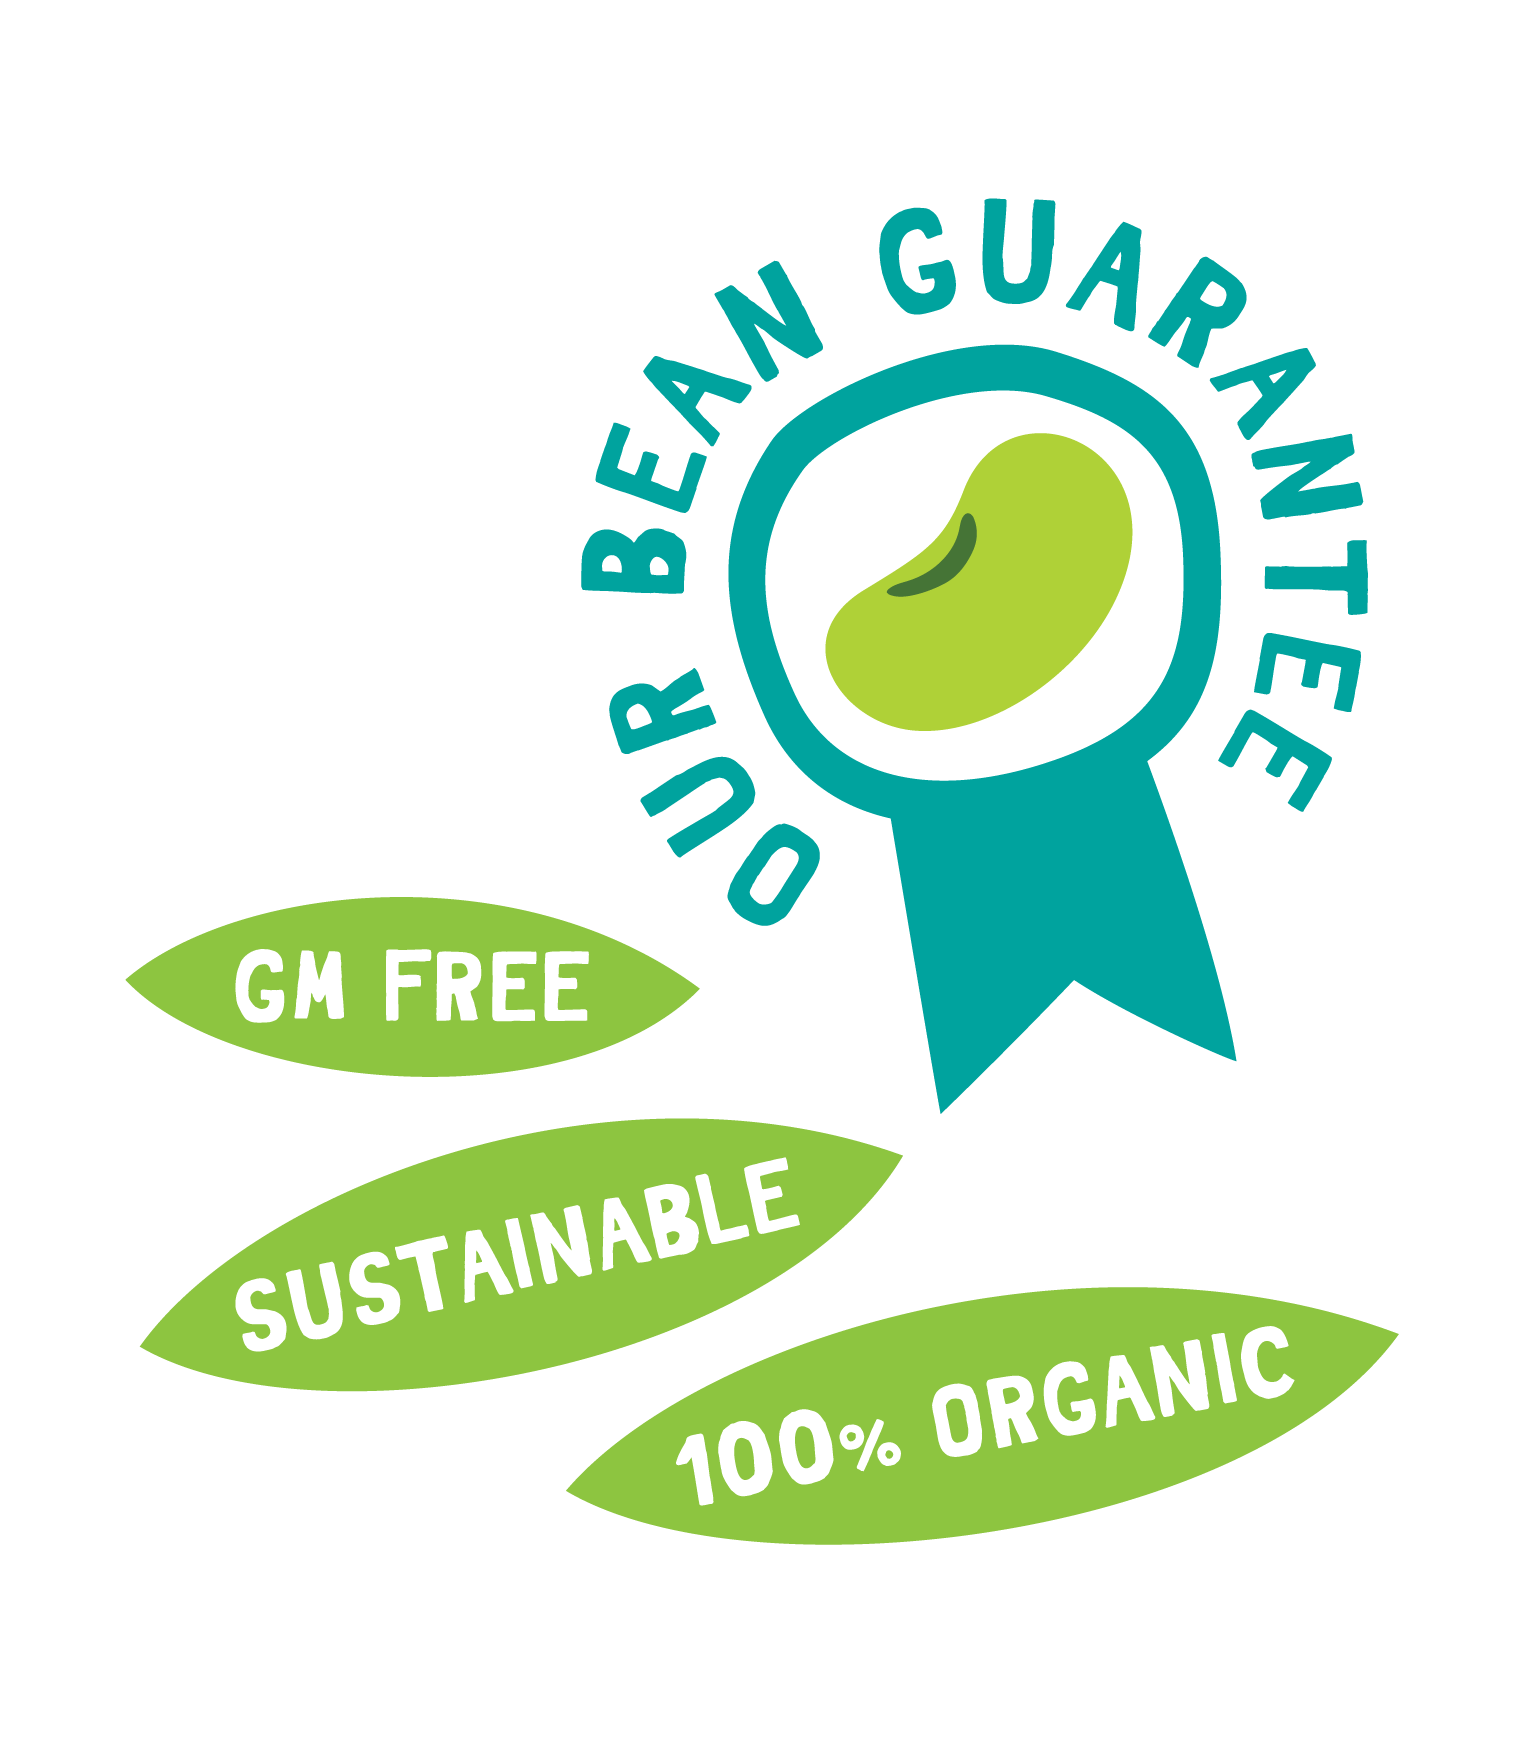 Our soya beans are GM free, sustainable and organic